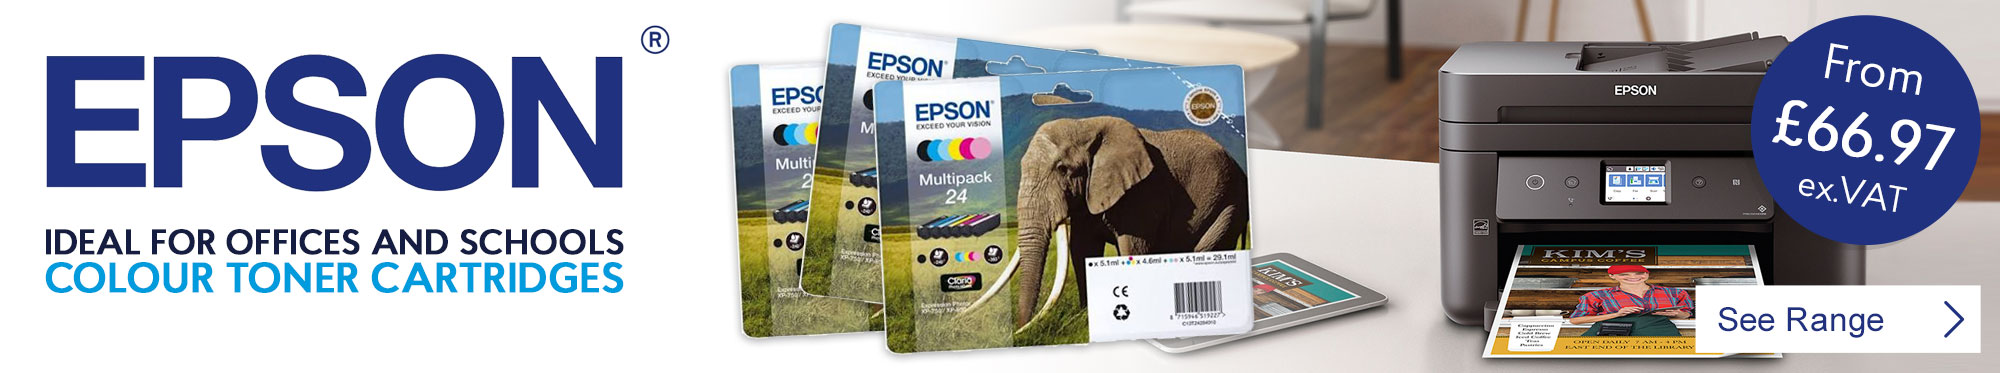 Ideal for Offices and Schools Epson Colour Toner Cartridges